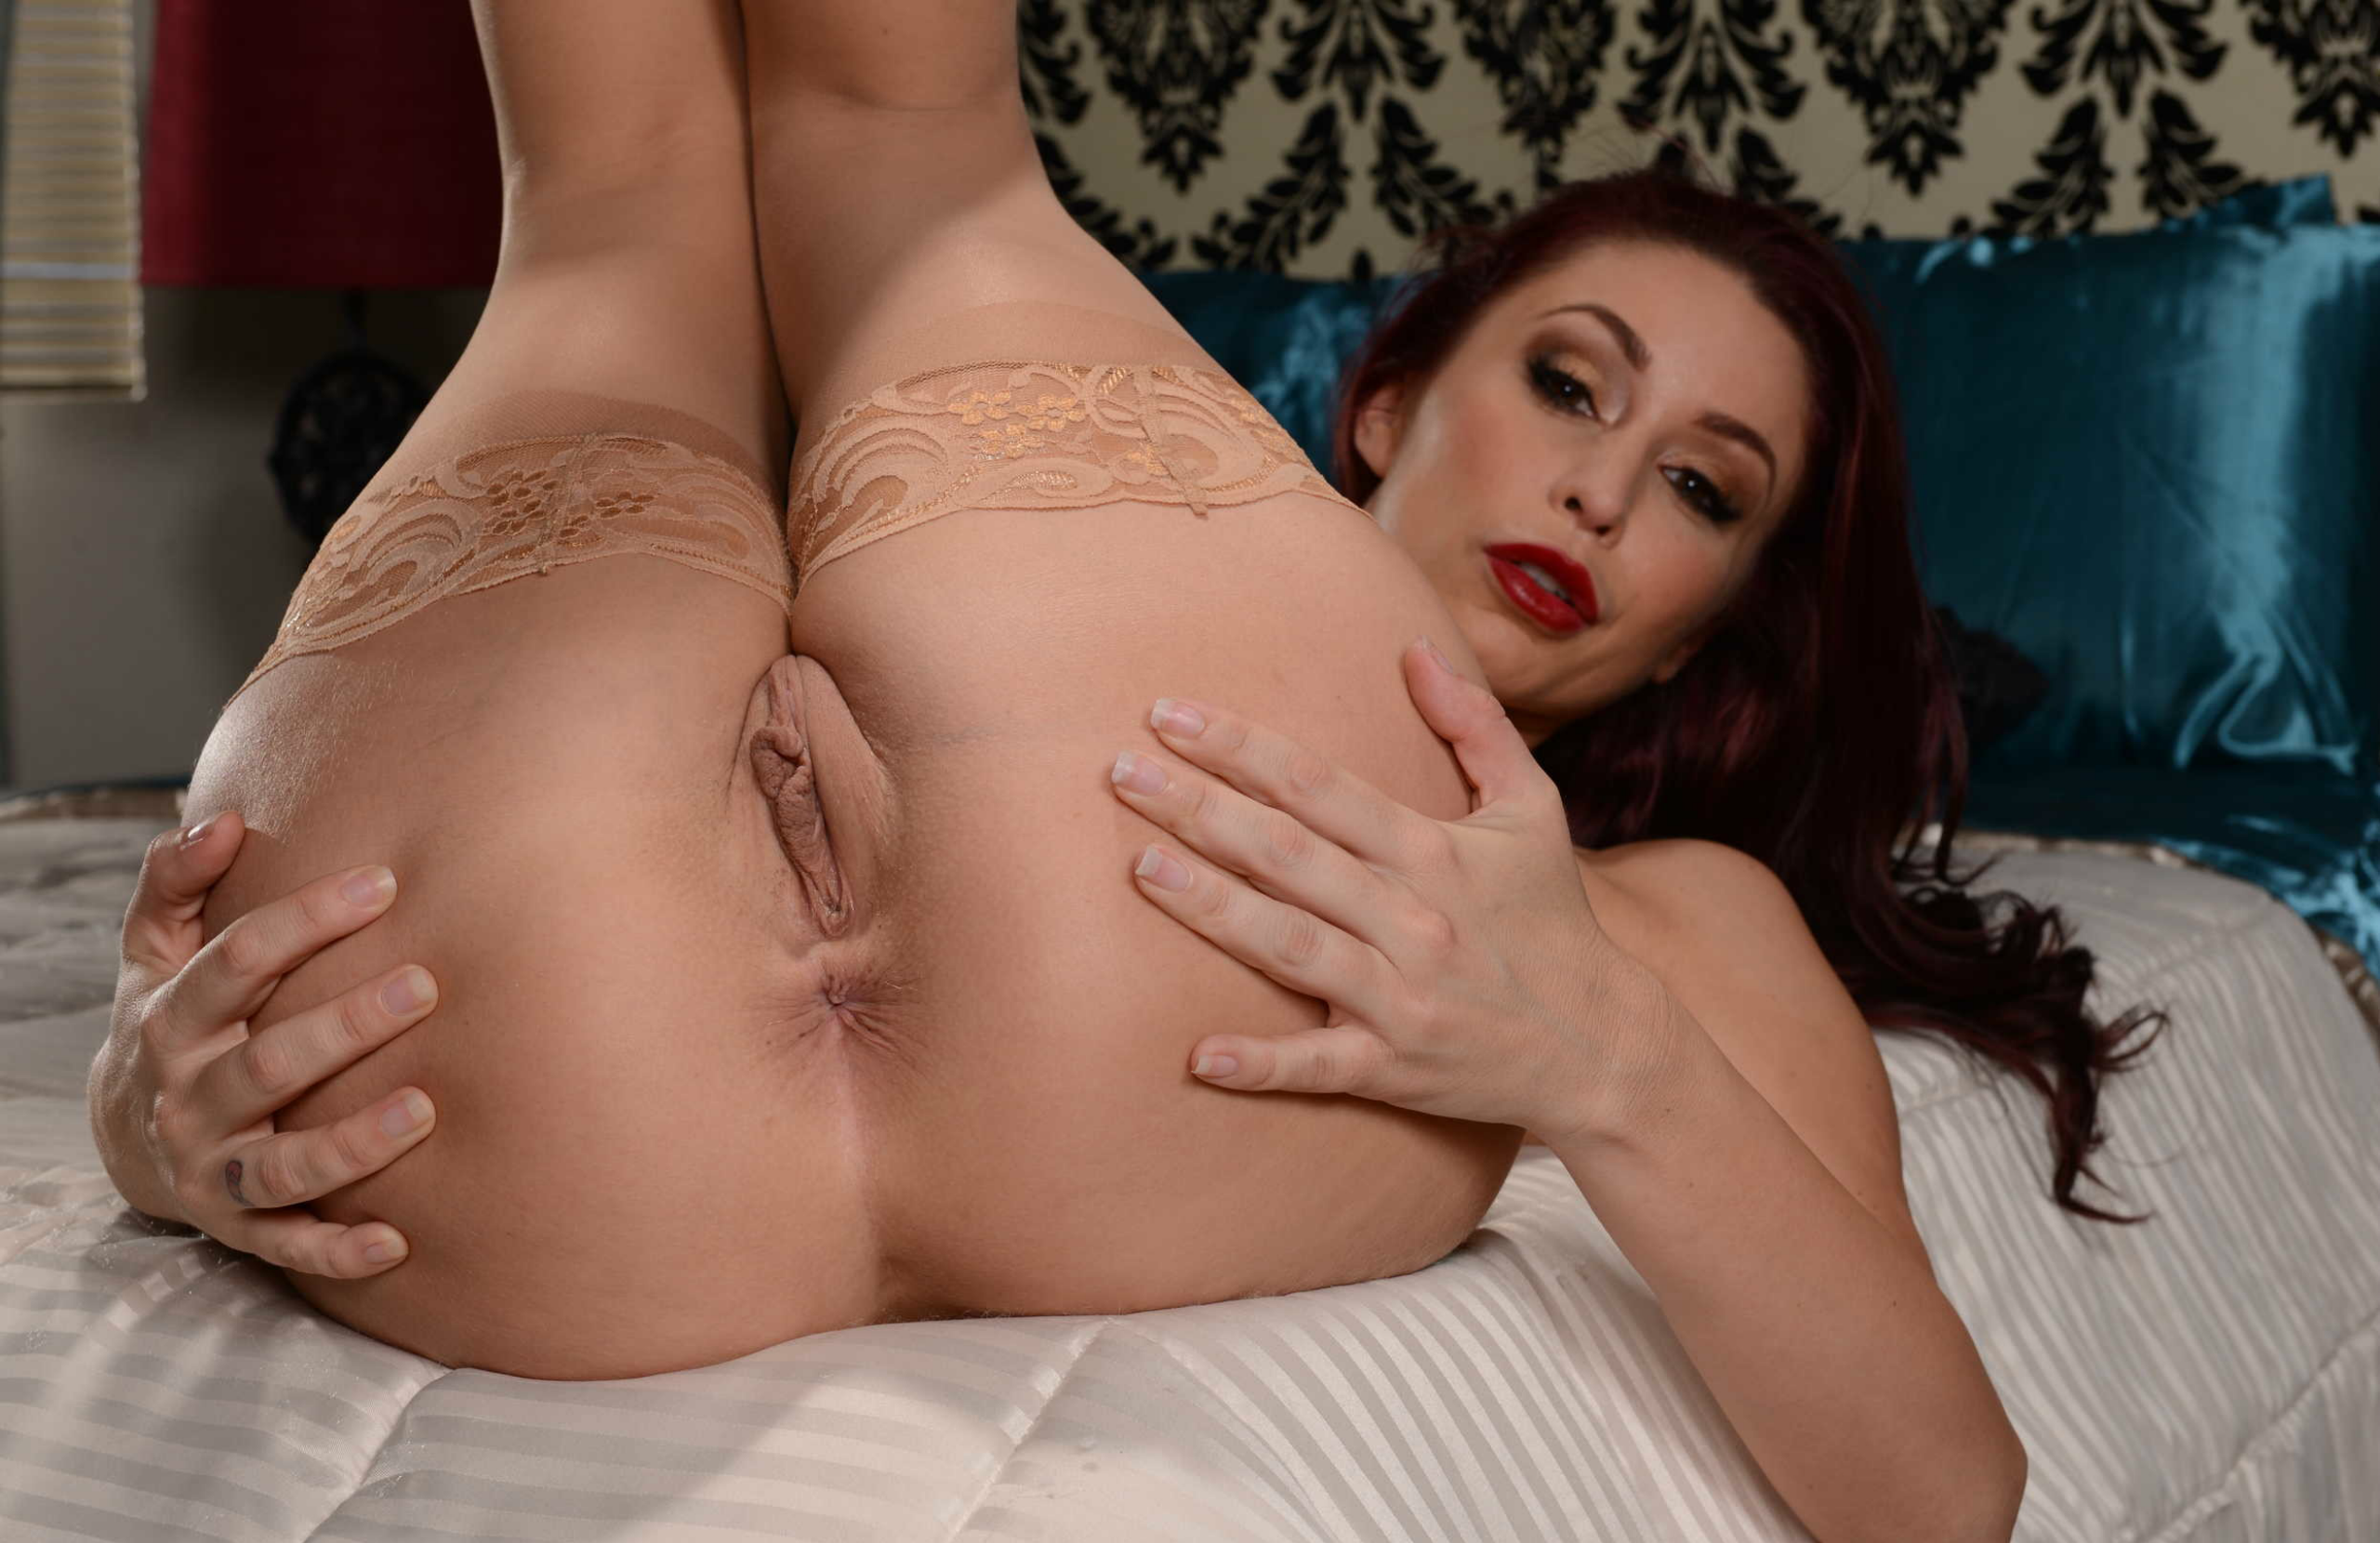 monique alexander anal